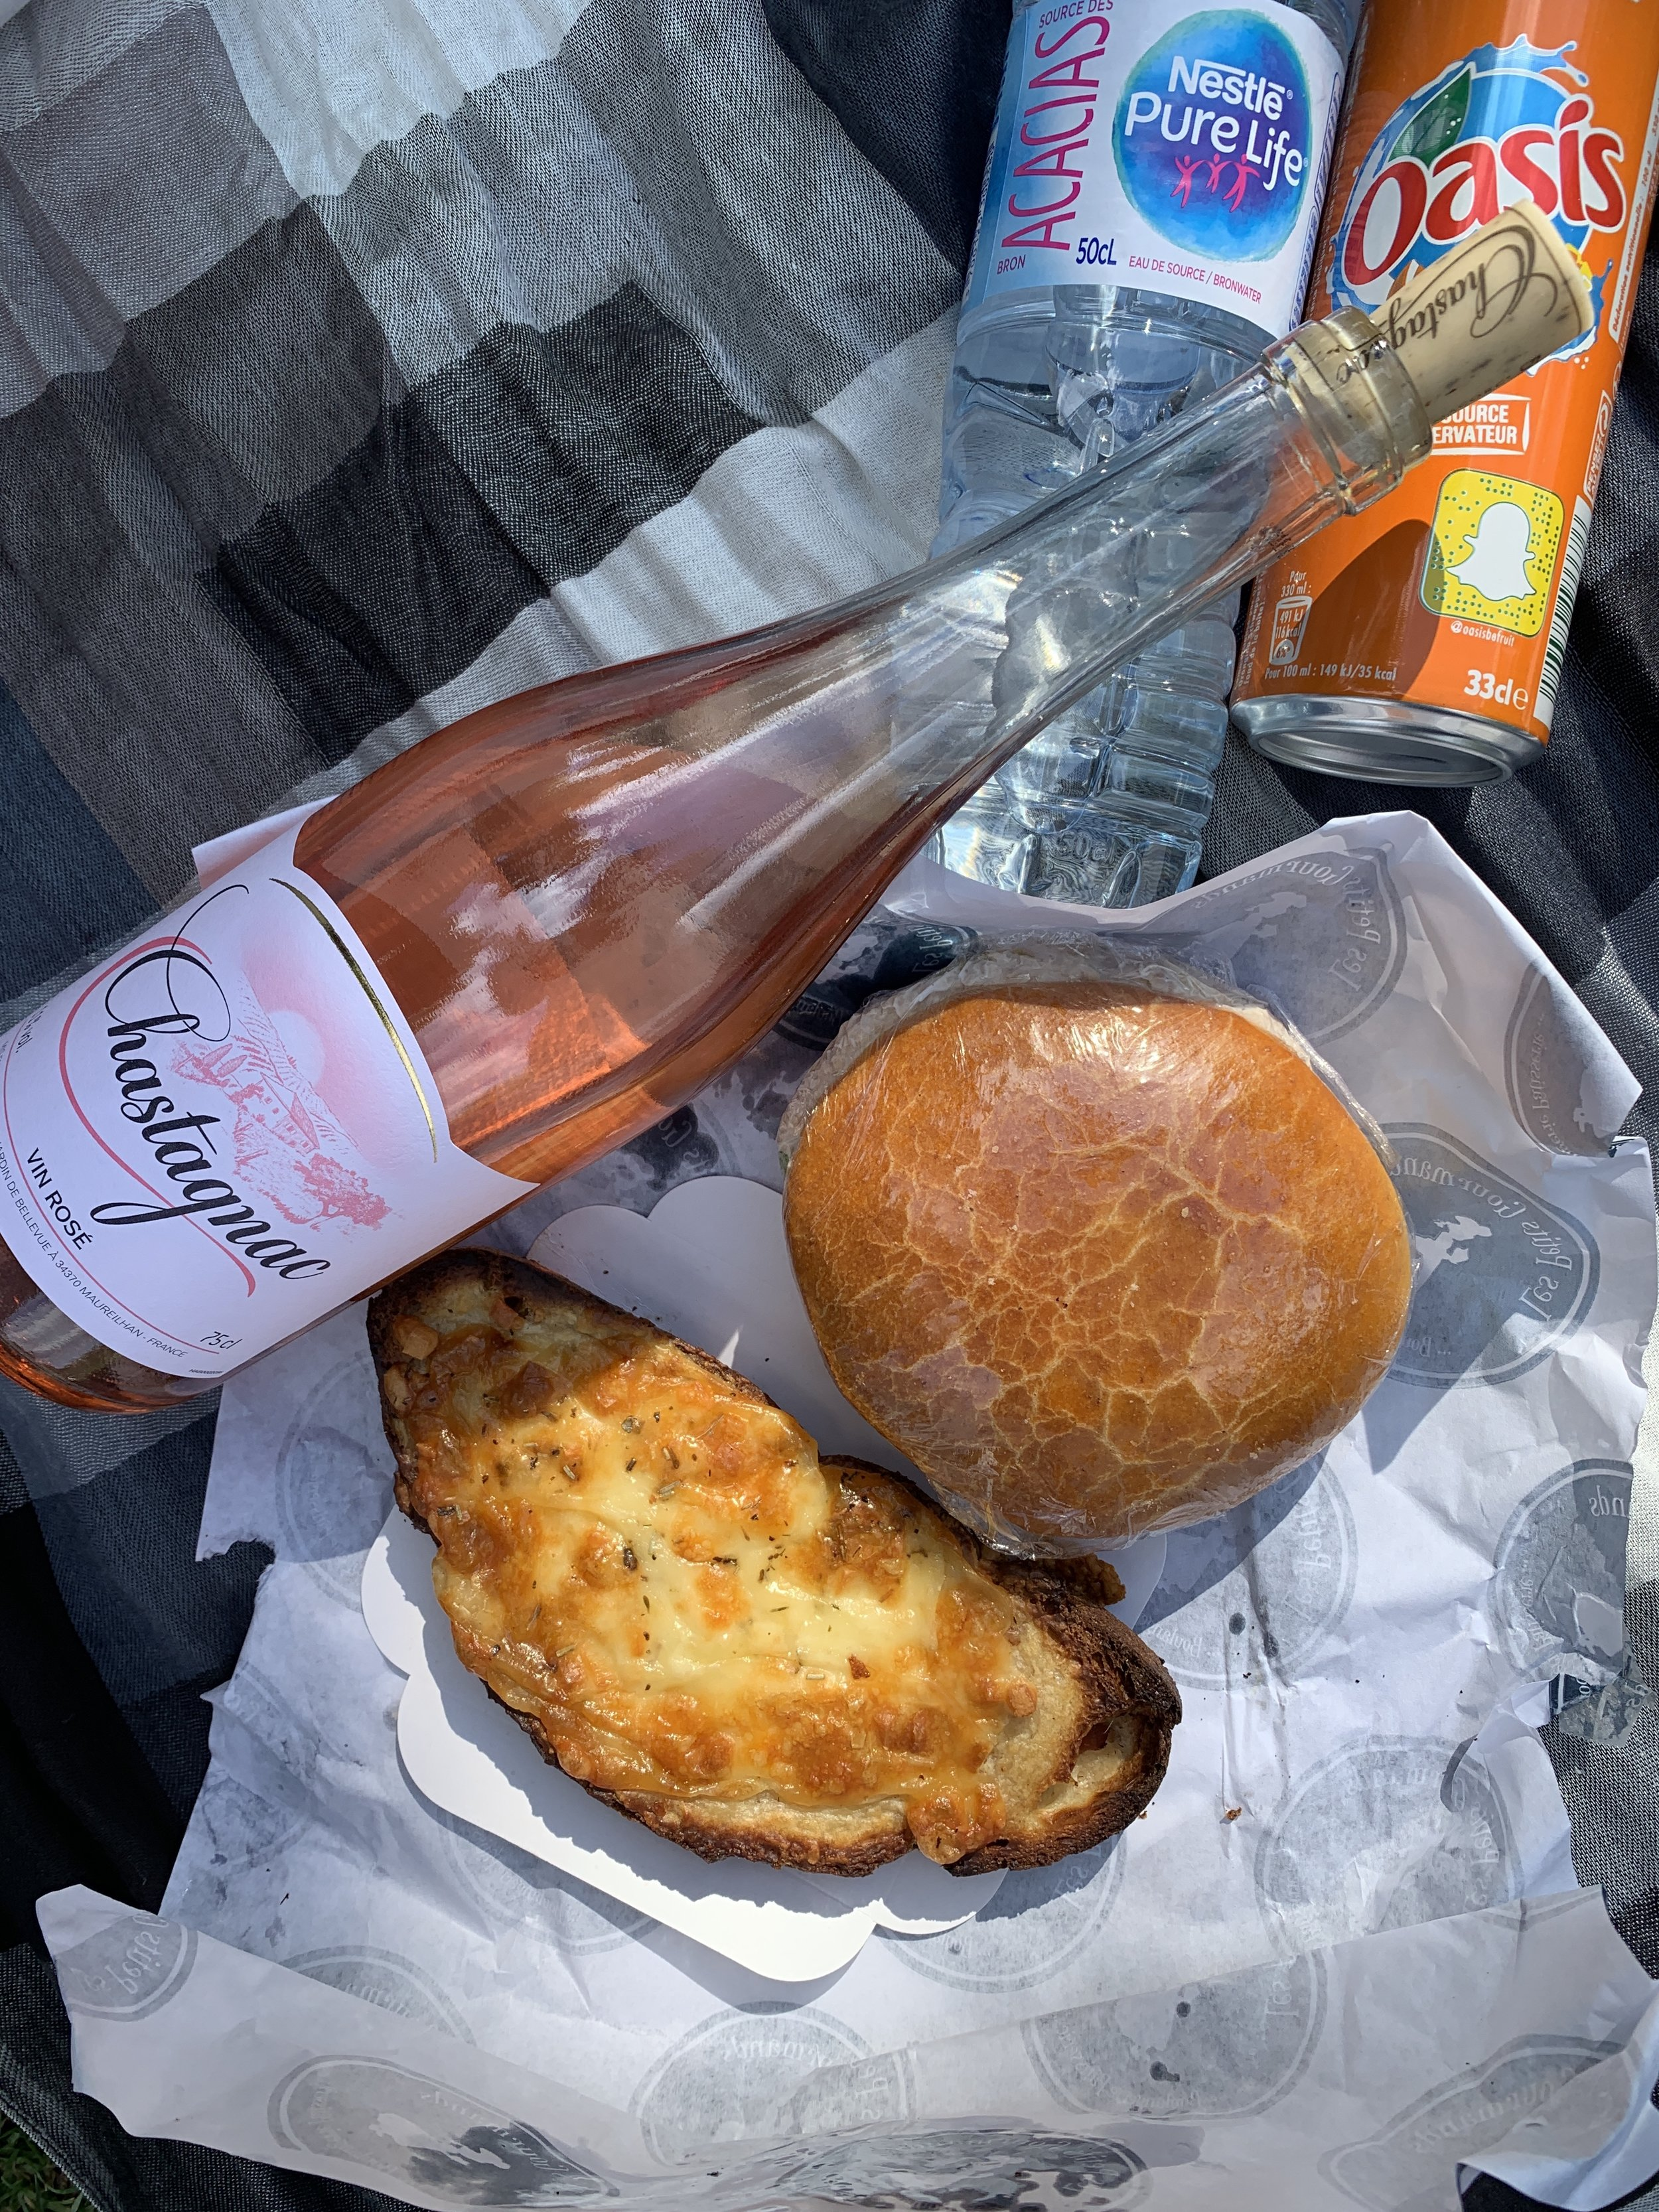 Nothing says a parisian lunch like fresh bakery items and wine.